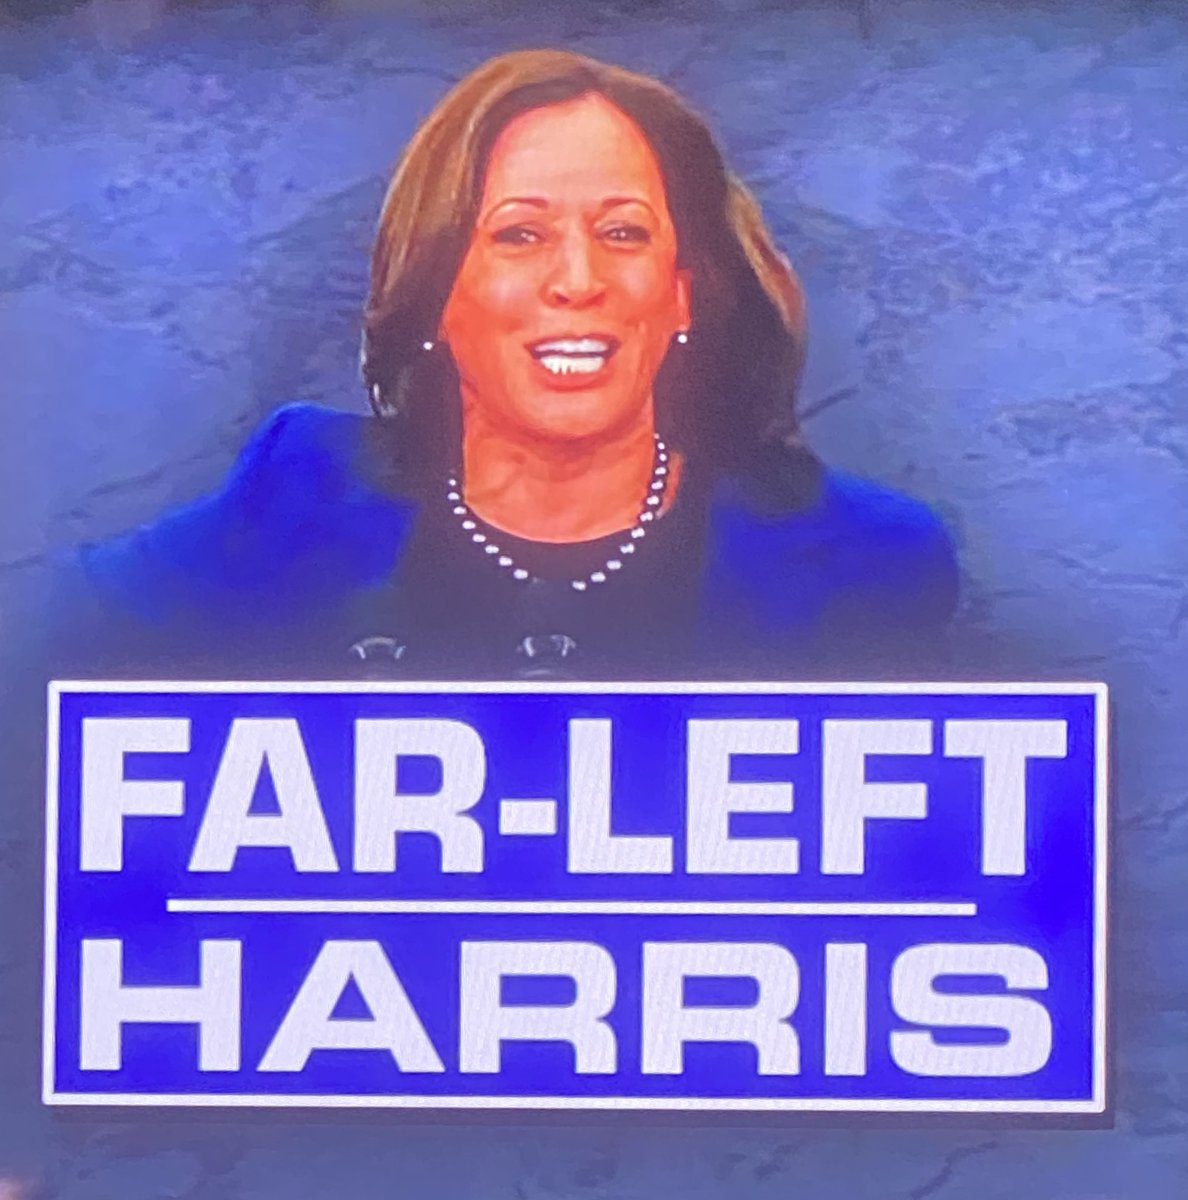 Trumps hair, face, skin and hands have been fair game for the media, and therefore in order to be fair, presumptive President Harris must be likewise treated #Trump #maga #gop #potus #dems #seanhannity #tuckercarlsontonight #ingrahamangle #realDonaldTrump #Trump2020 #wattersworld